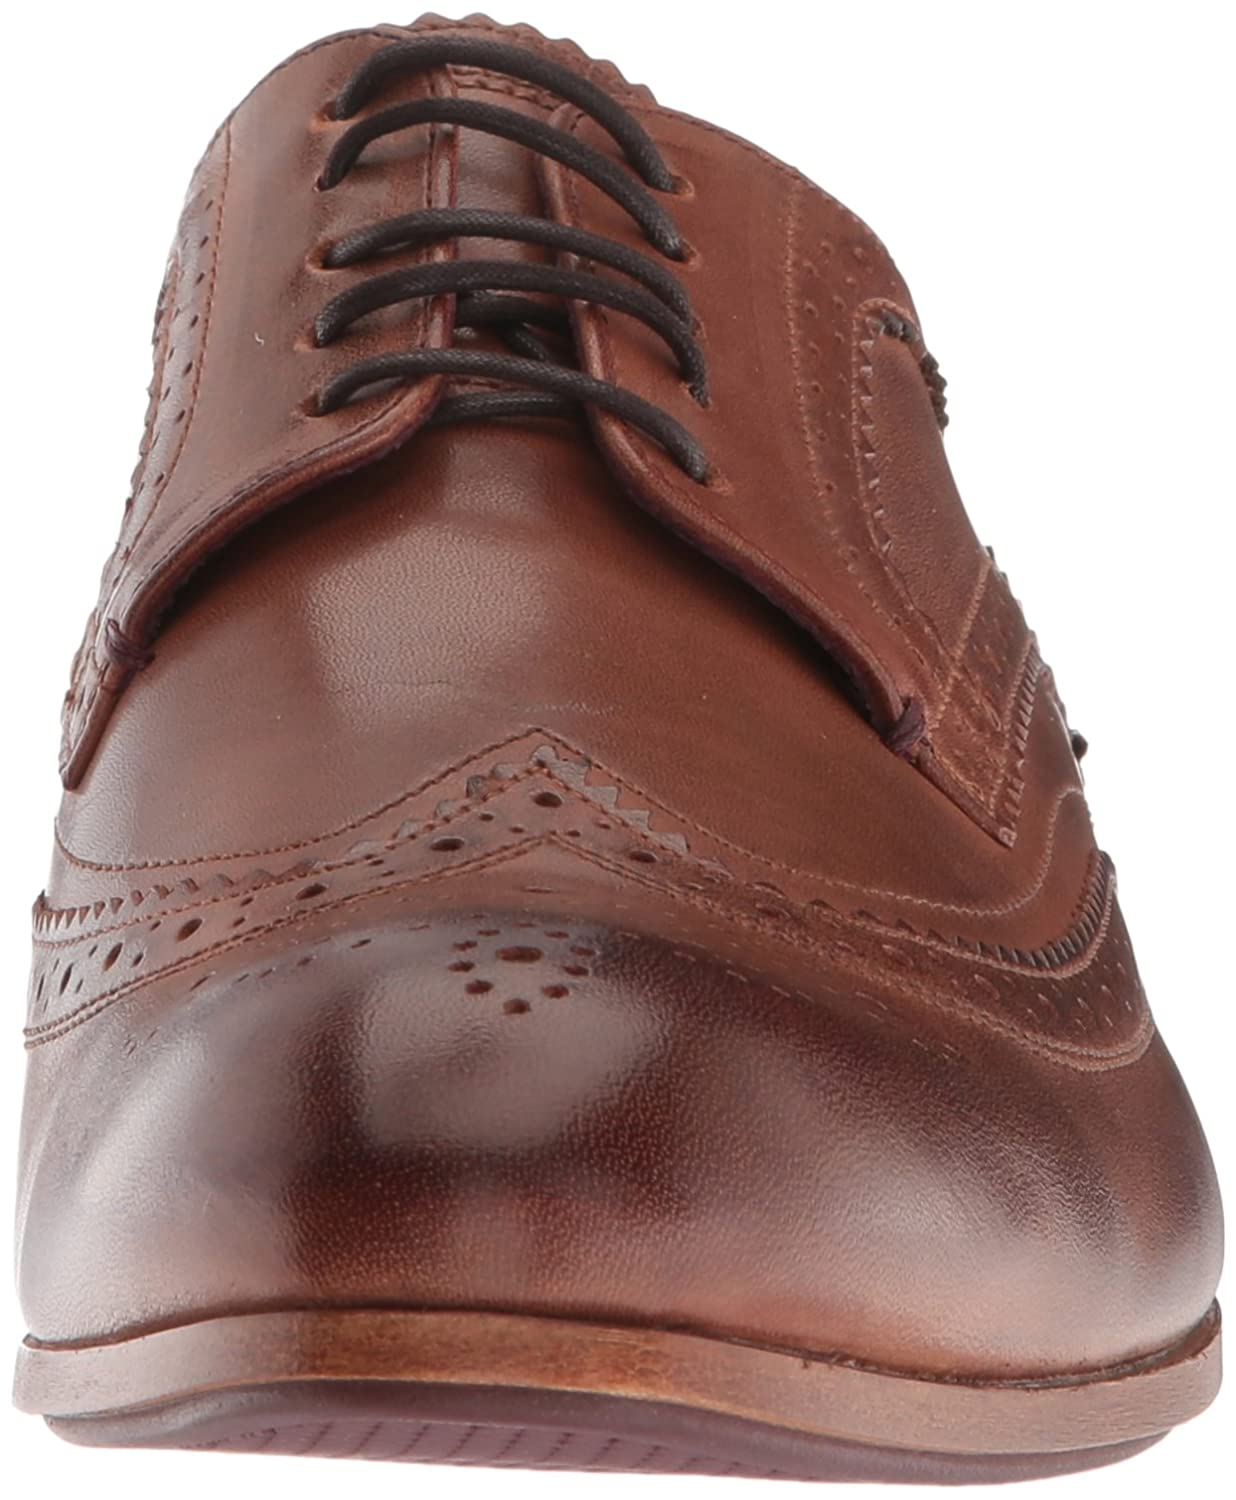 180804dc0350f Amazon.com  Ted Baker Men s Camyli Oxford  Shoes